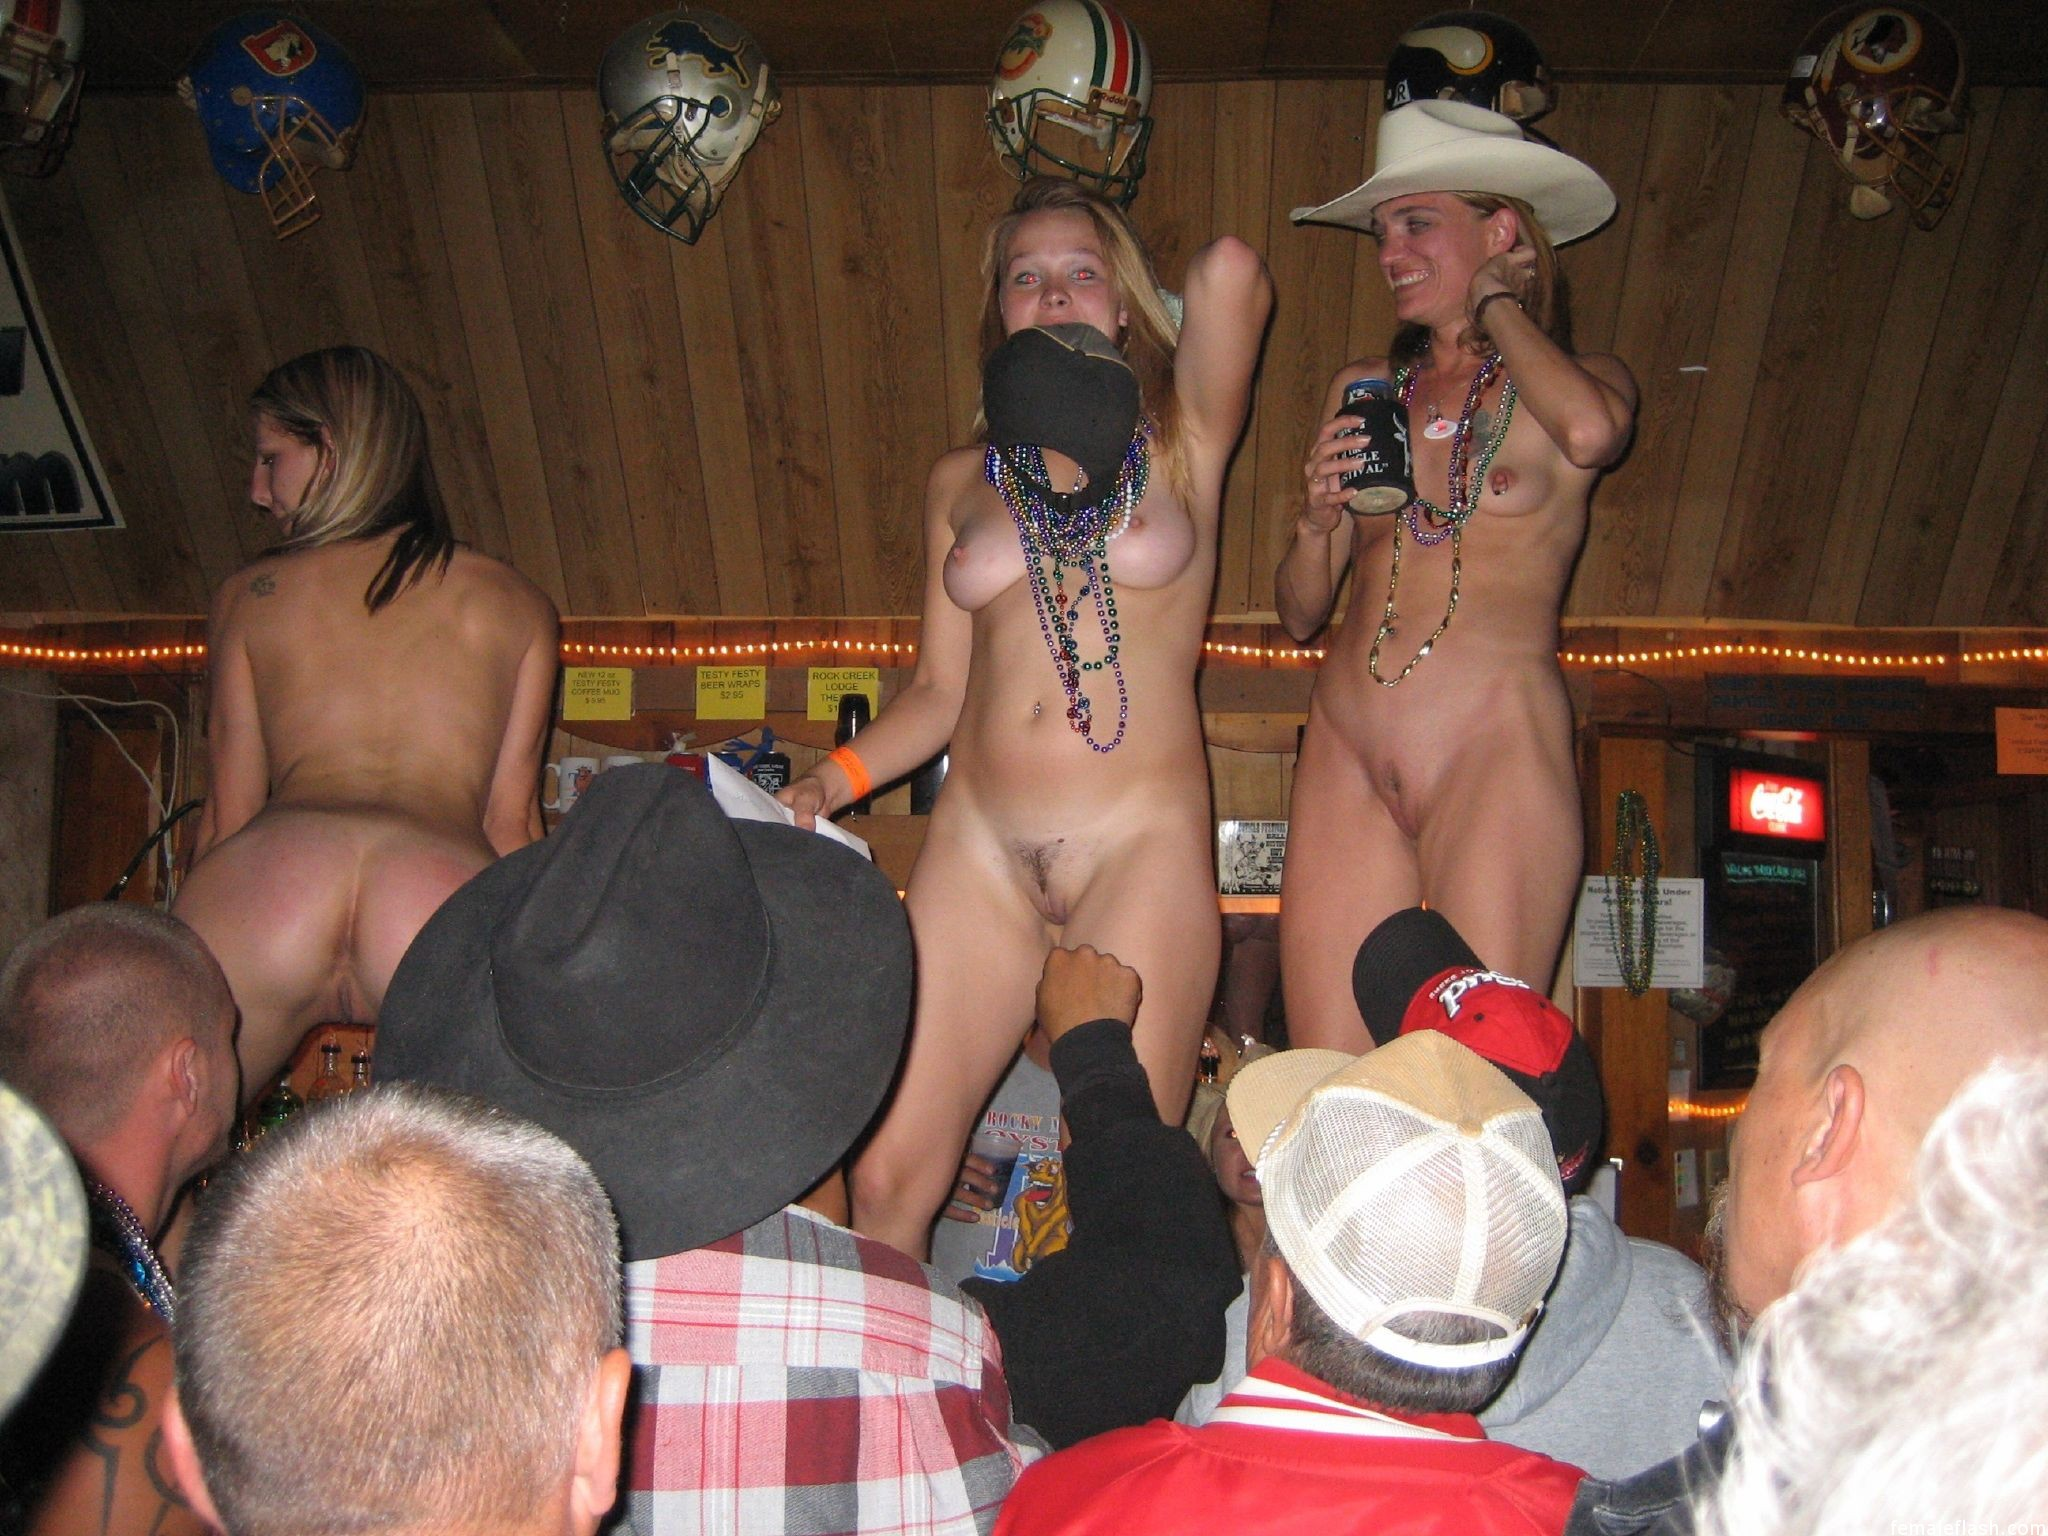 Naked girls on stage phrase